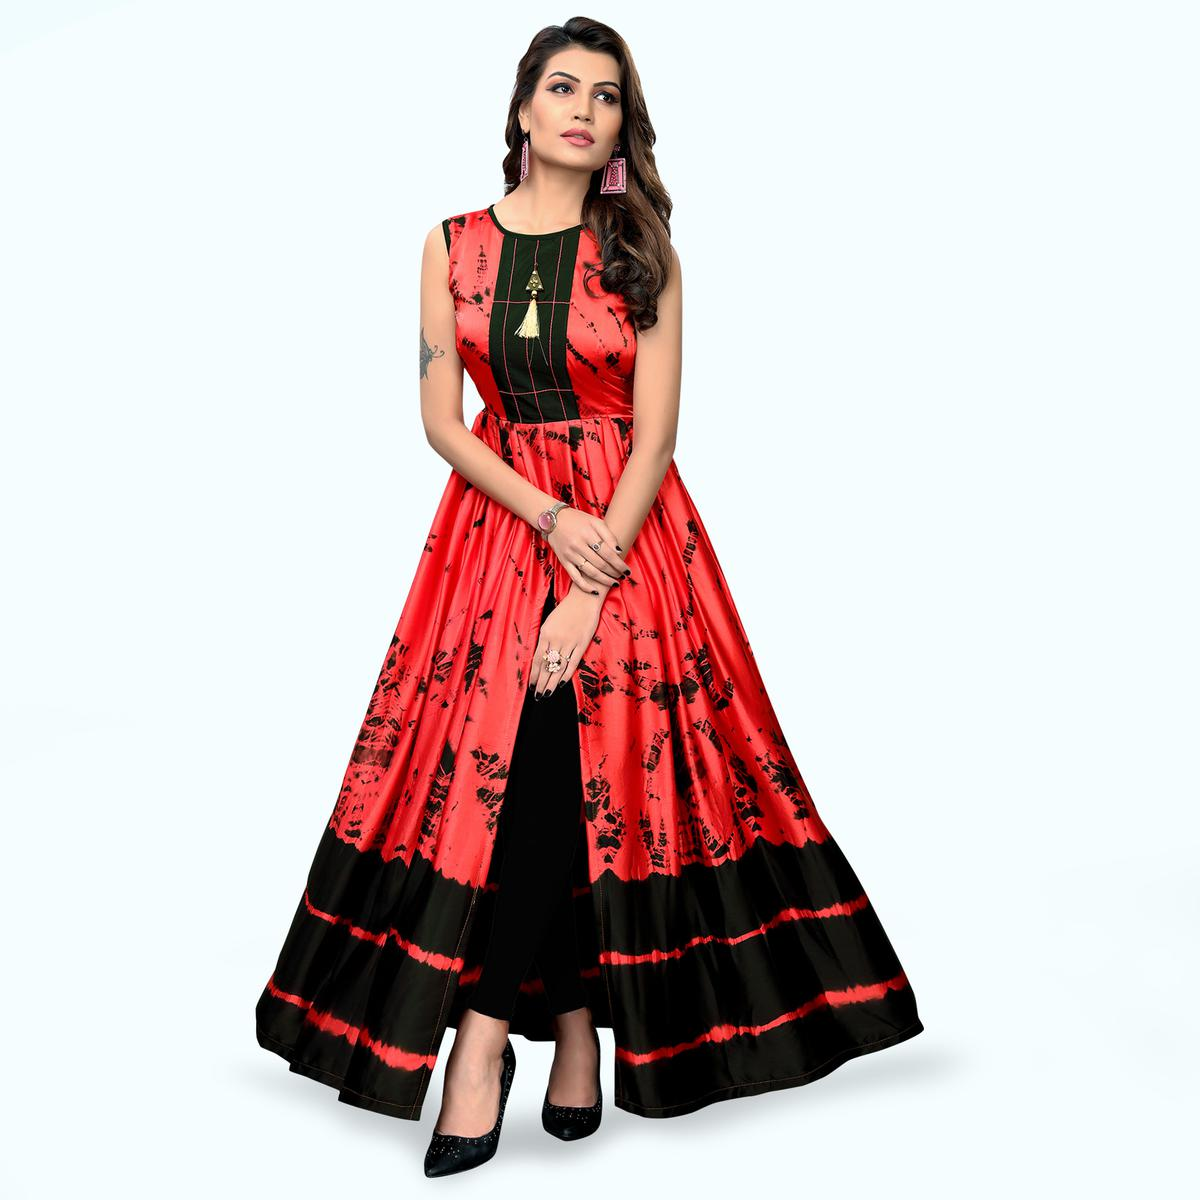 Classy Red Colored Partywear Shibori Printed Satin Long Kurti